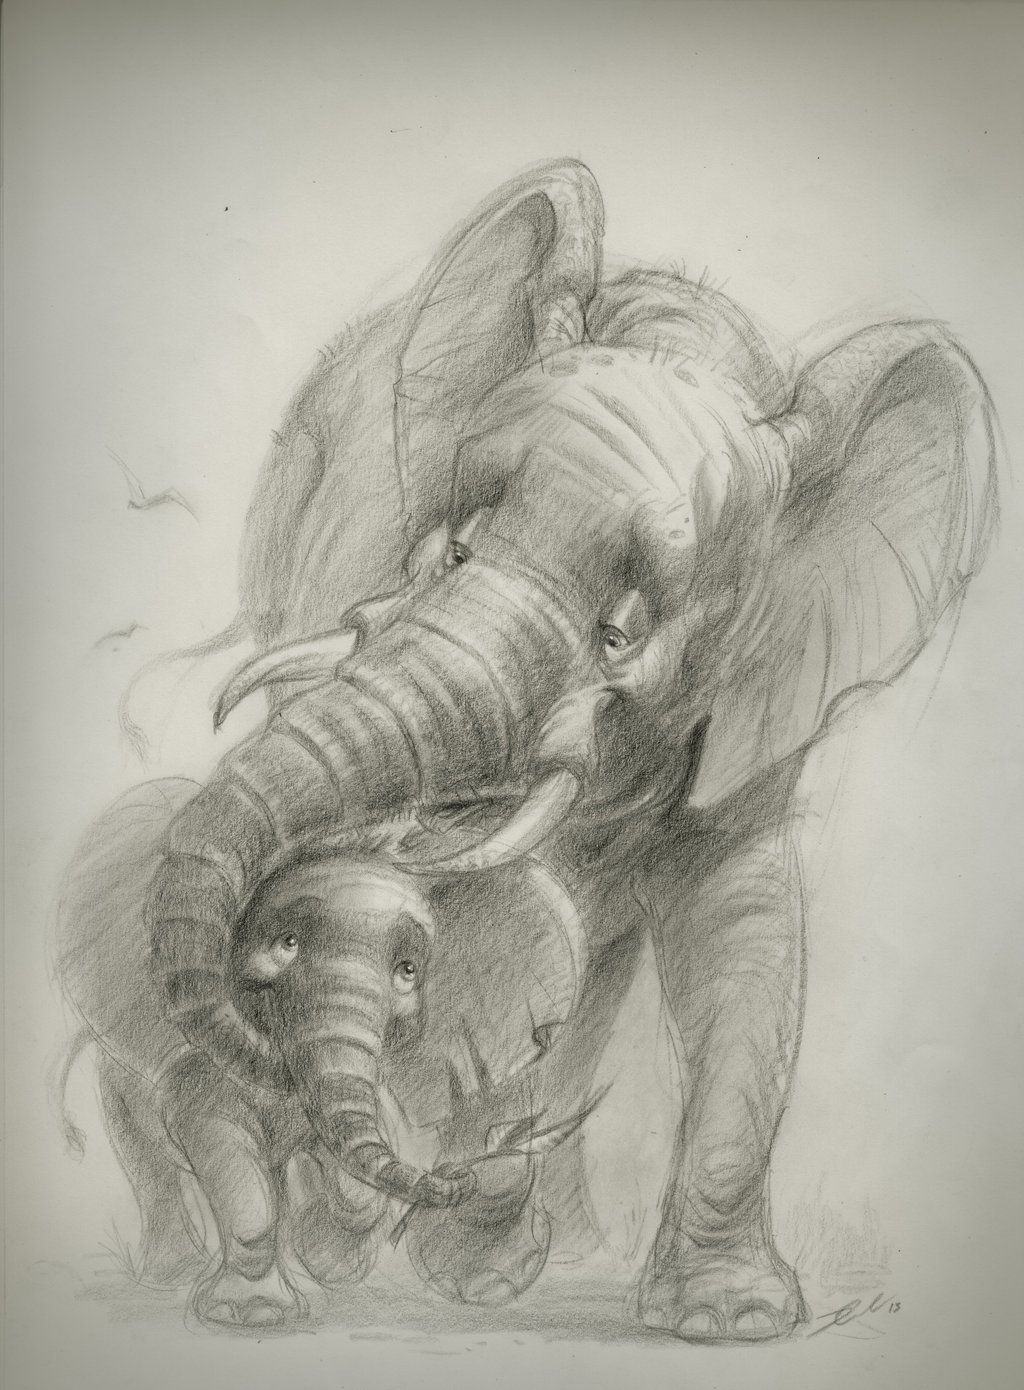 17 best images about elephant sketch an elephant 17 best images about elephant sketch an elephant drawings of elephants and elephant tattoo design